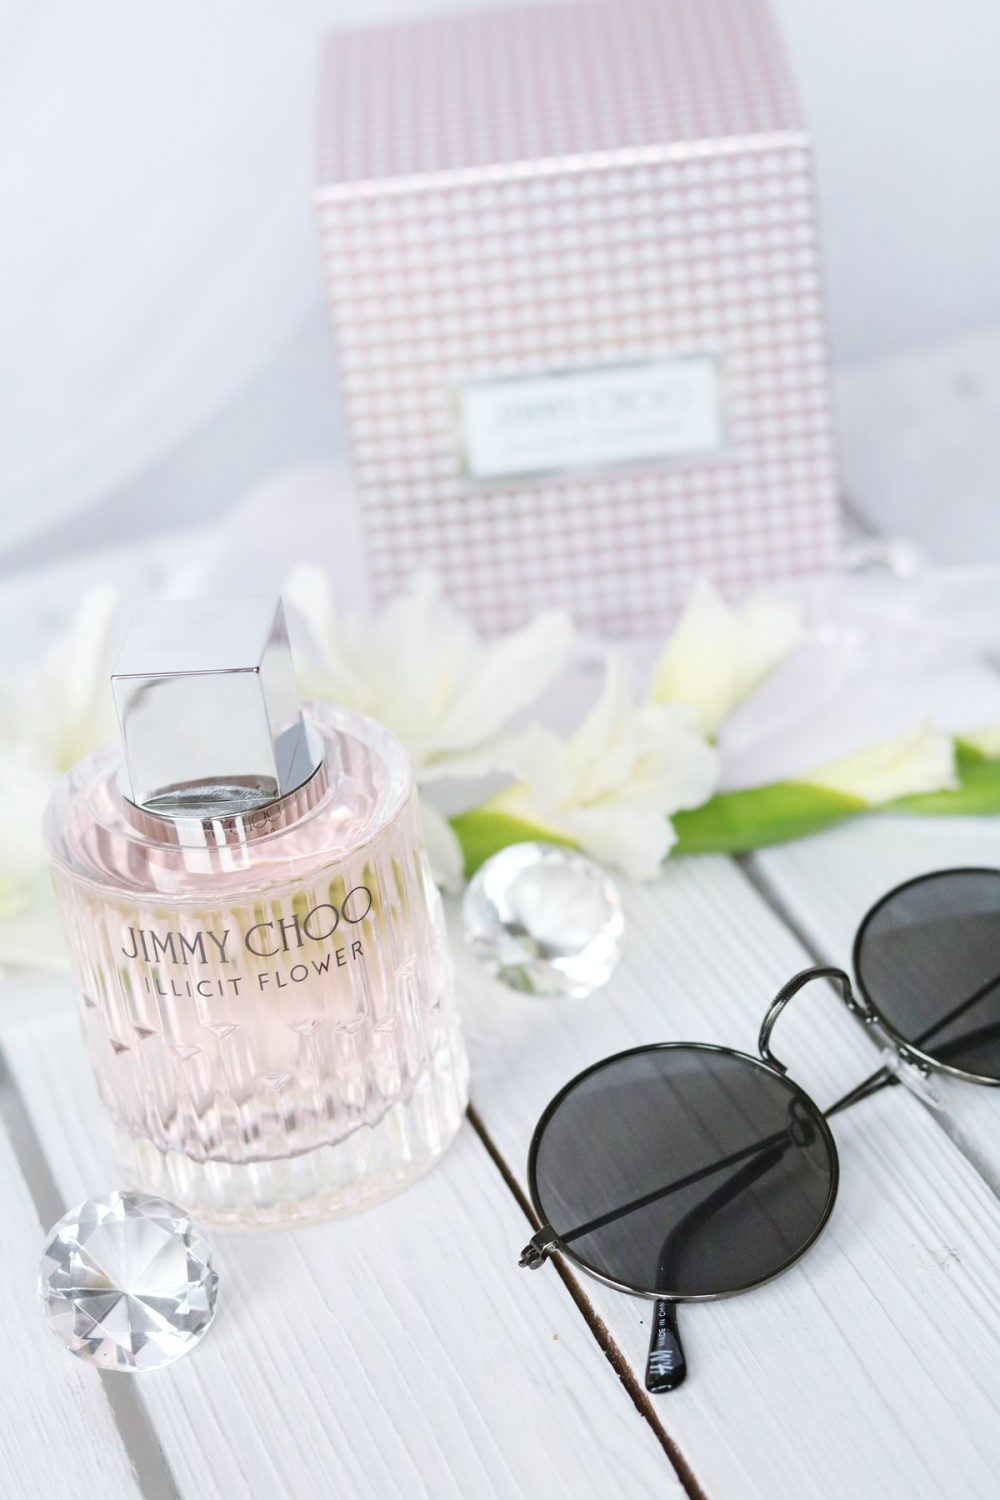 Jimmy Choo Damenduft Parfum Illicit Flower (3)